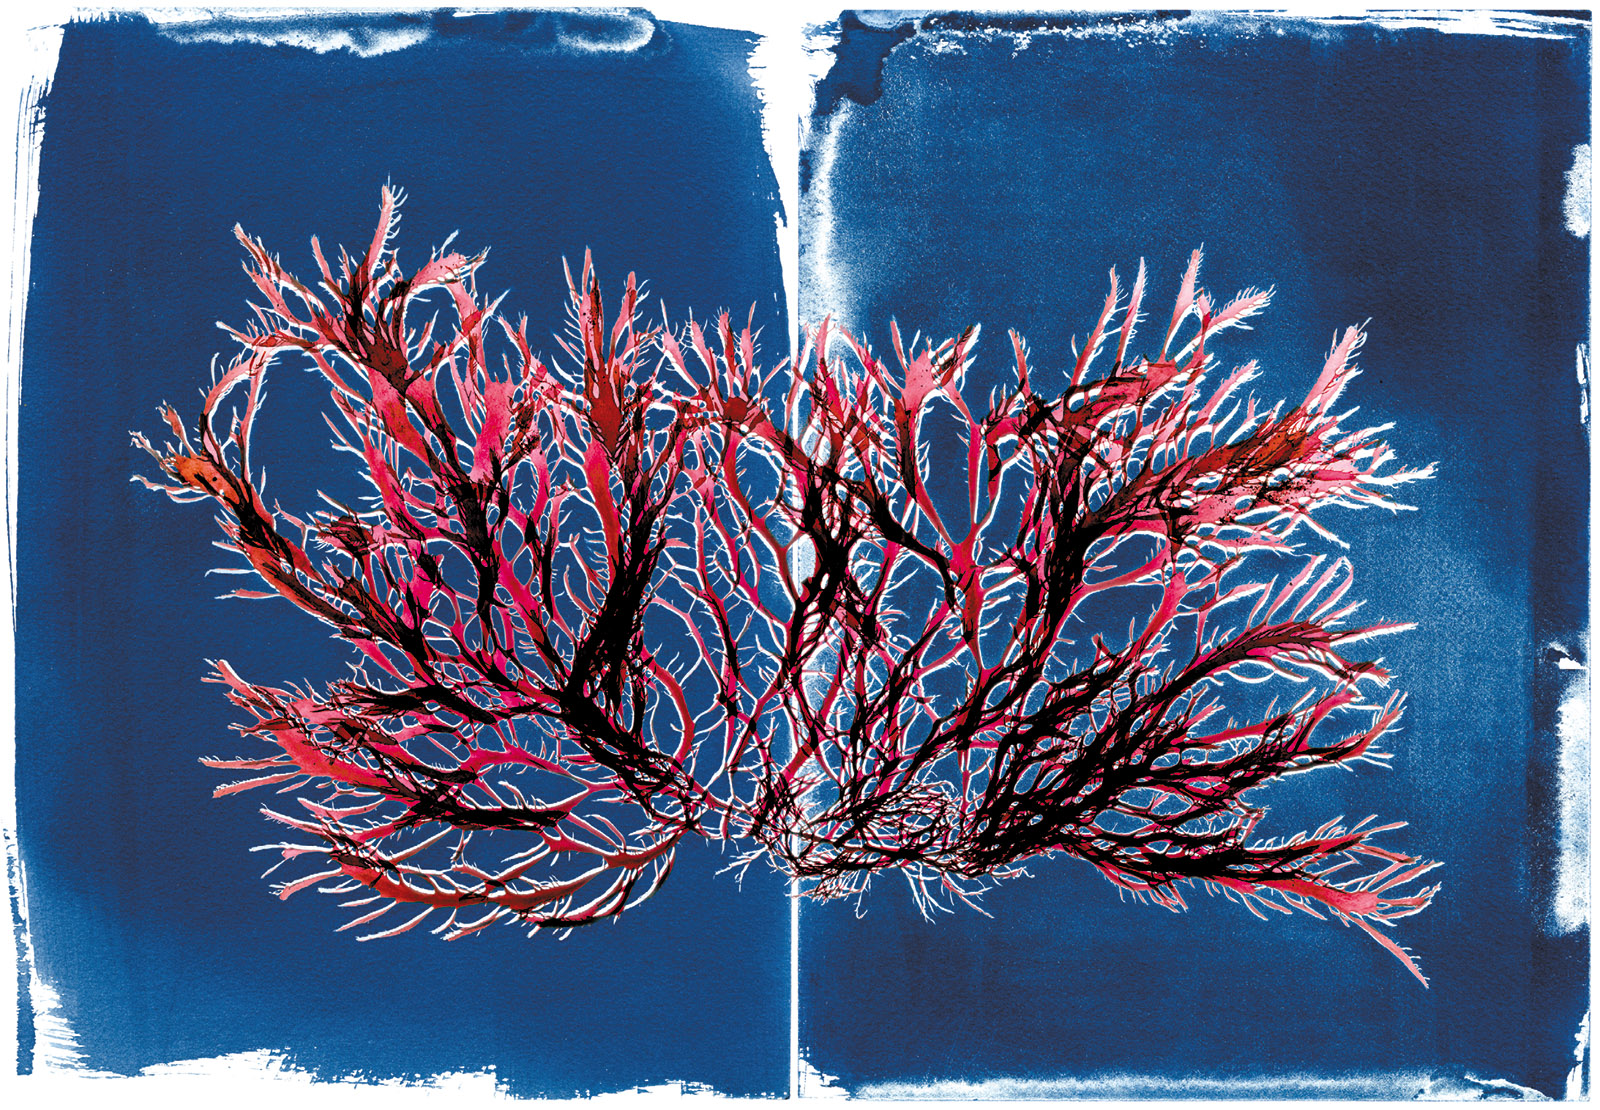 Pikea californica; scan overlaid on cyanotype from the book The Curious World of Seaweed